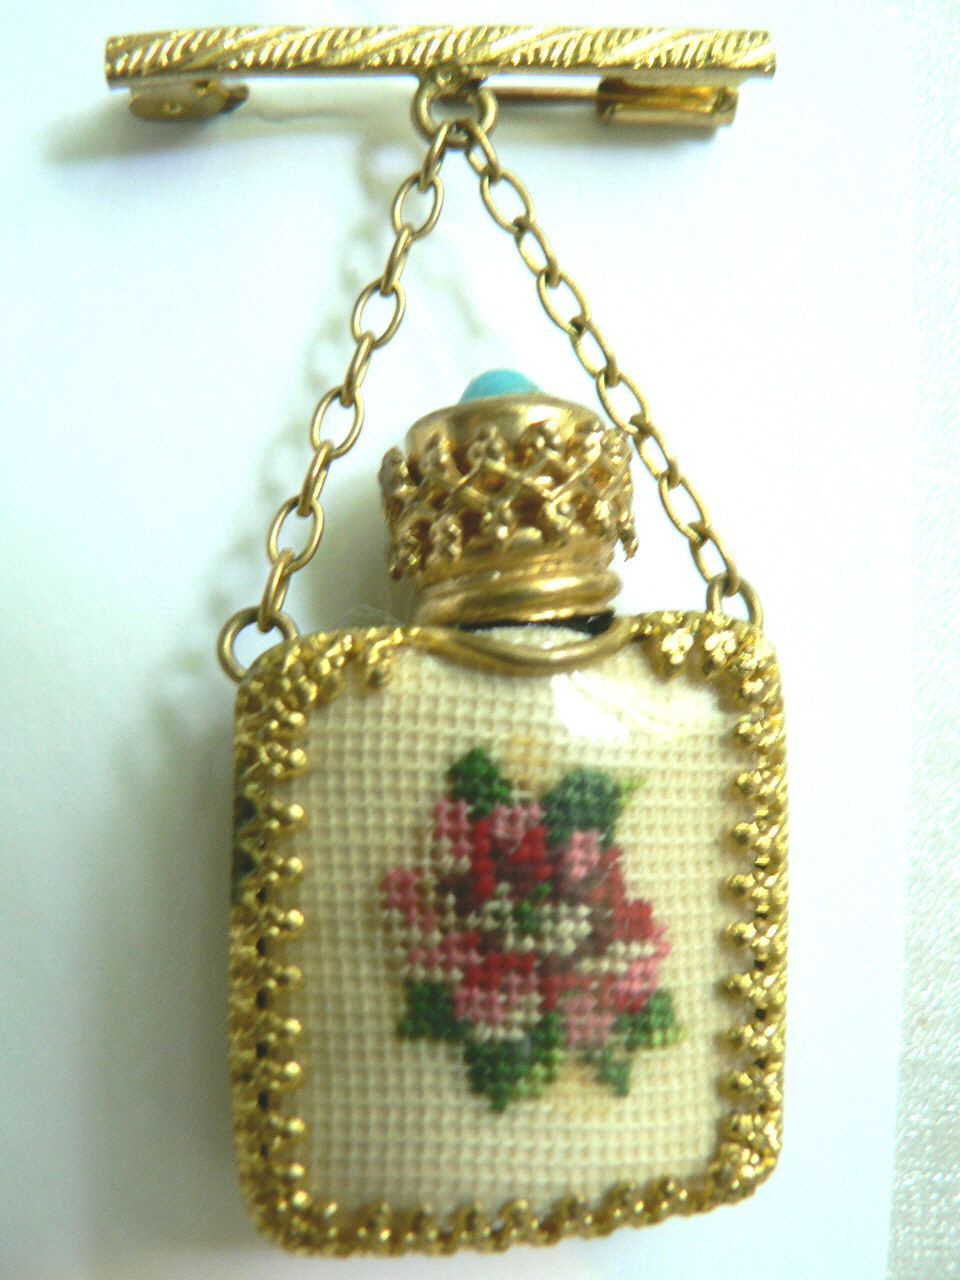 this beautiful brooch has a dangling perfume bottle with a lovely petit point hand crafted